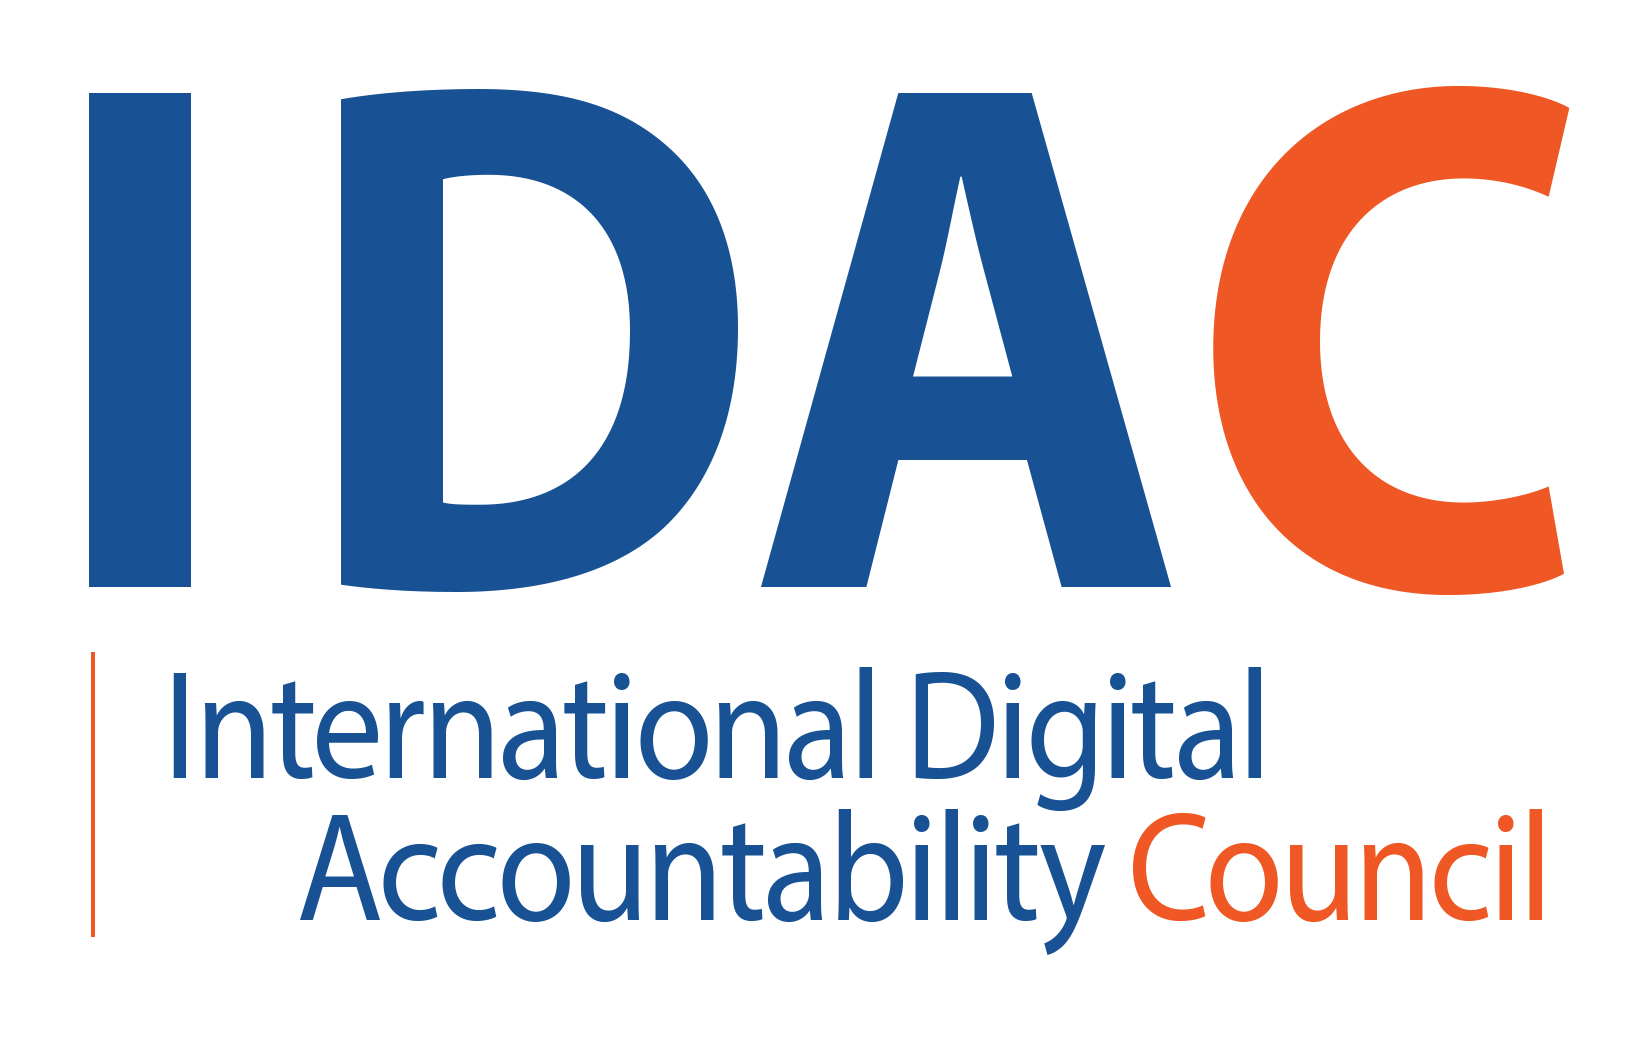 International Digital Accountability Council